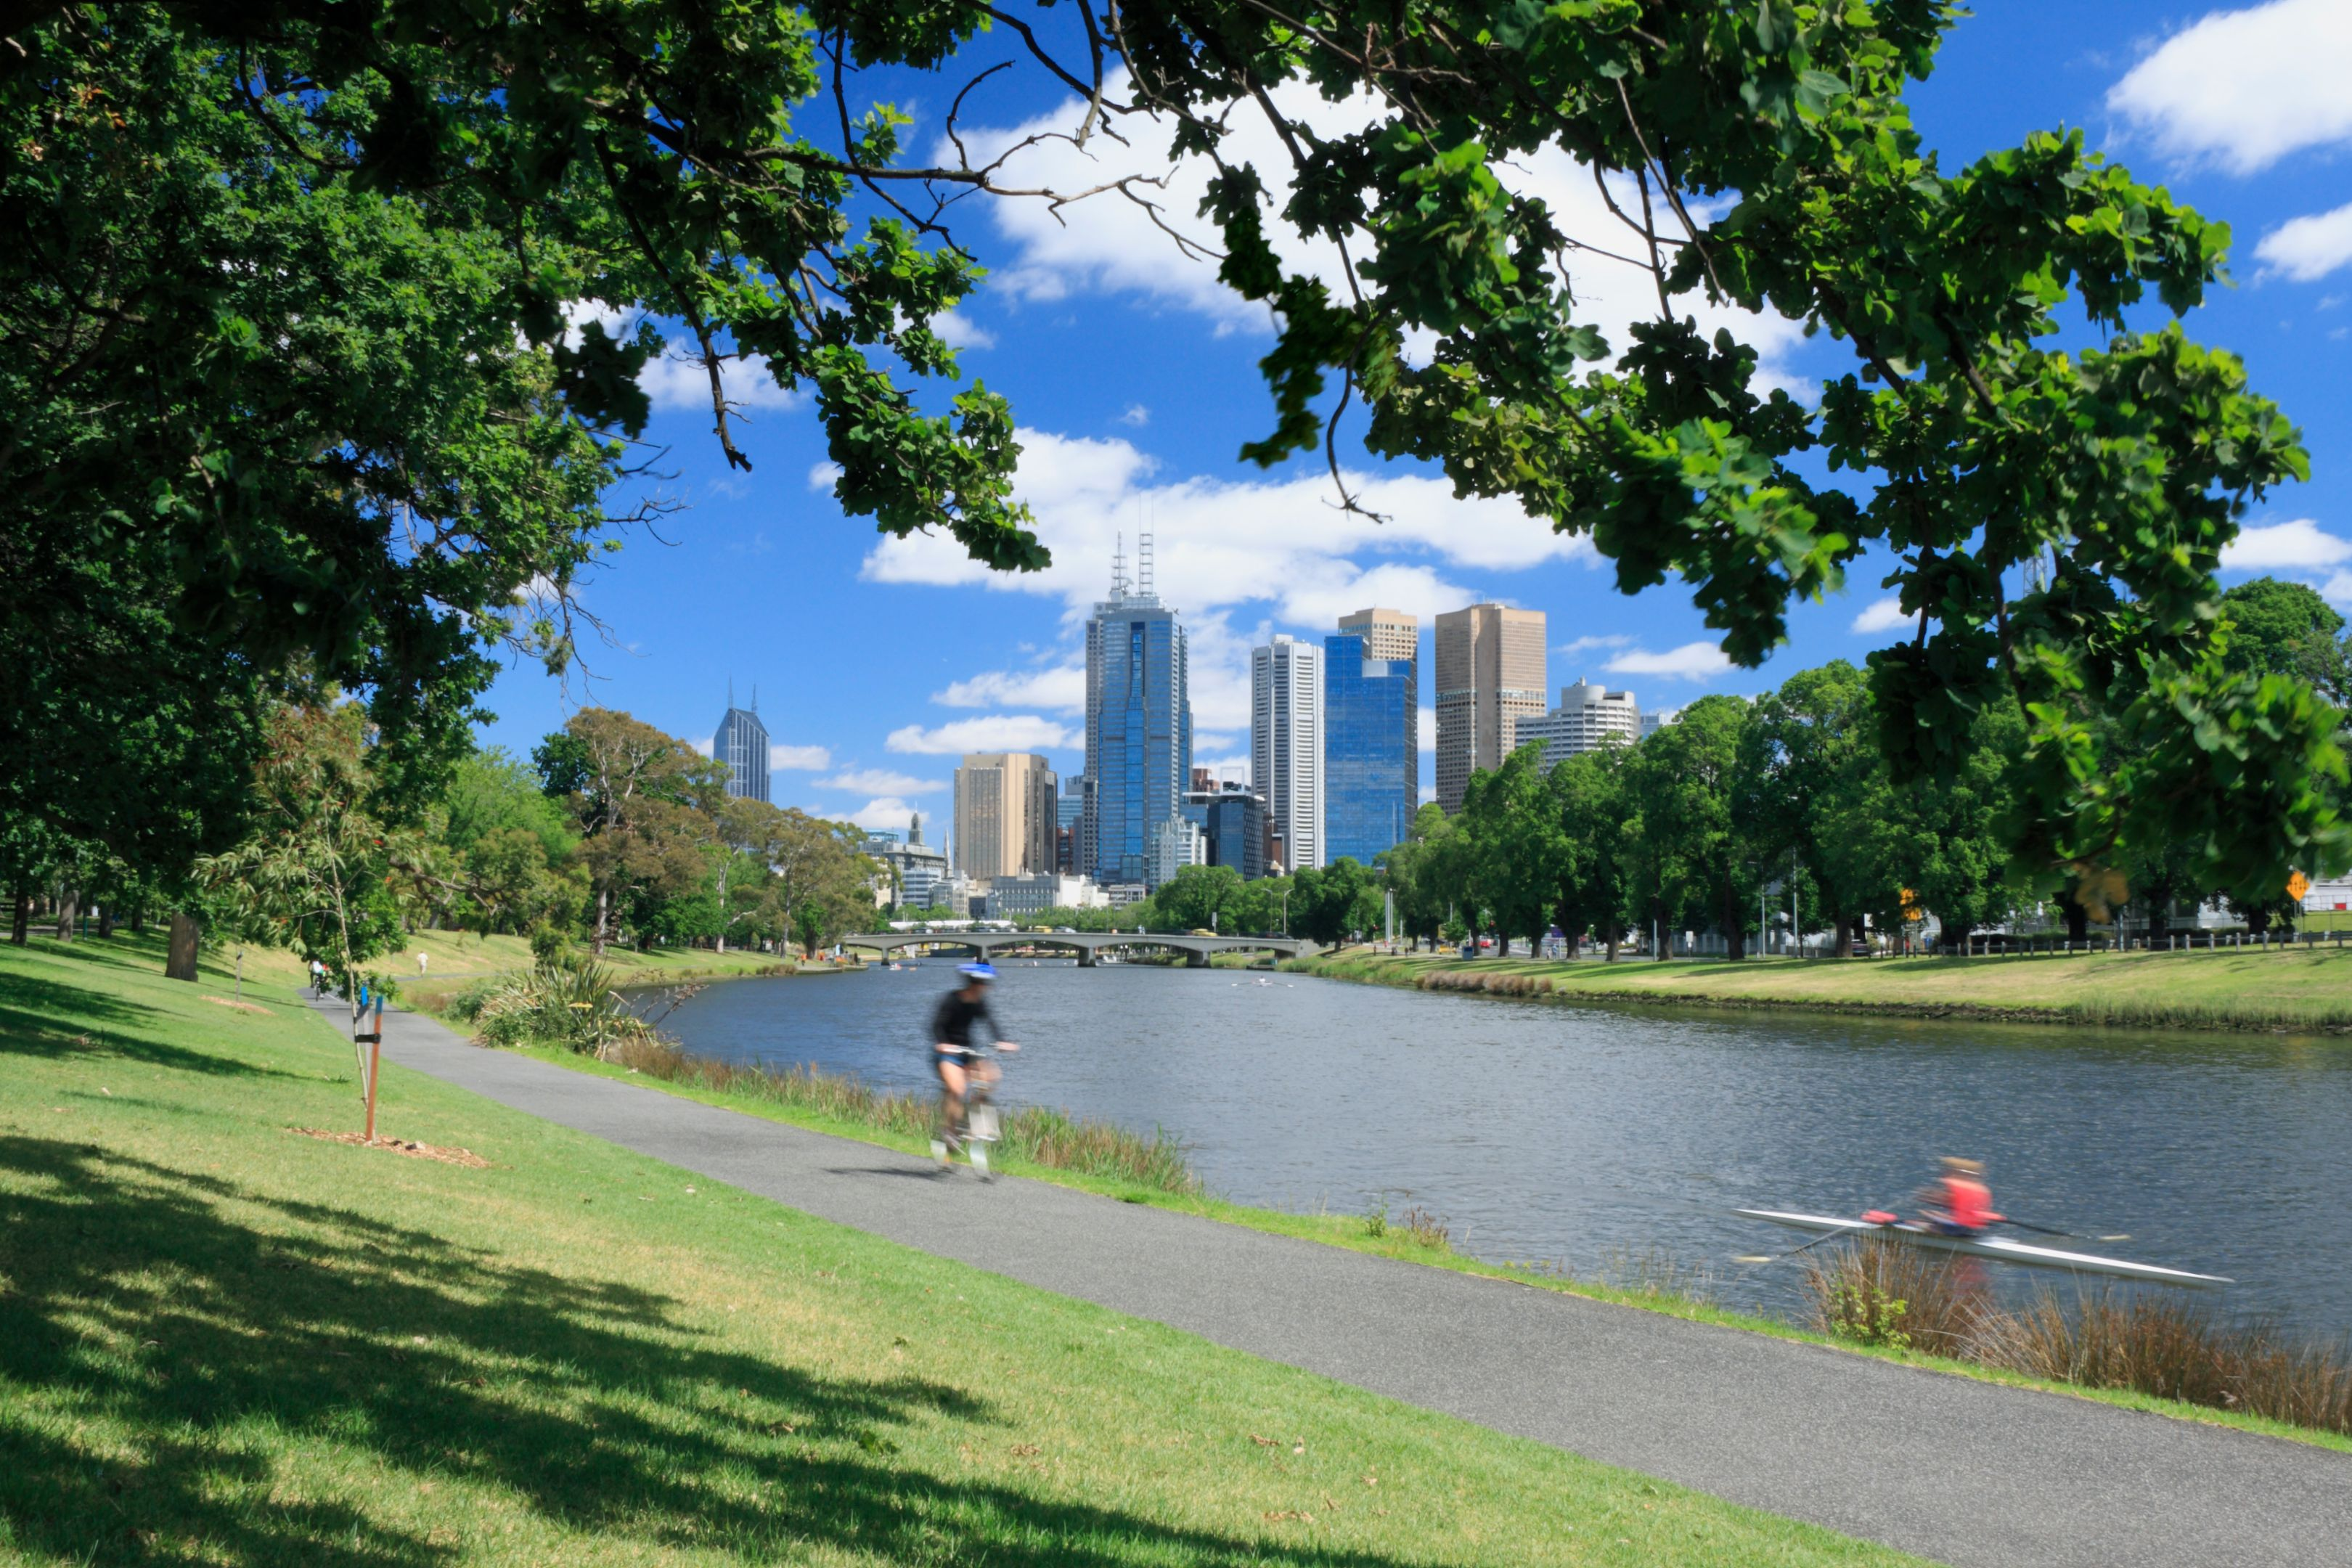 Melbourne by the Yarra River